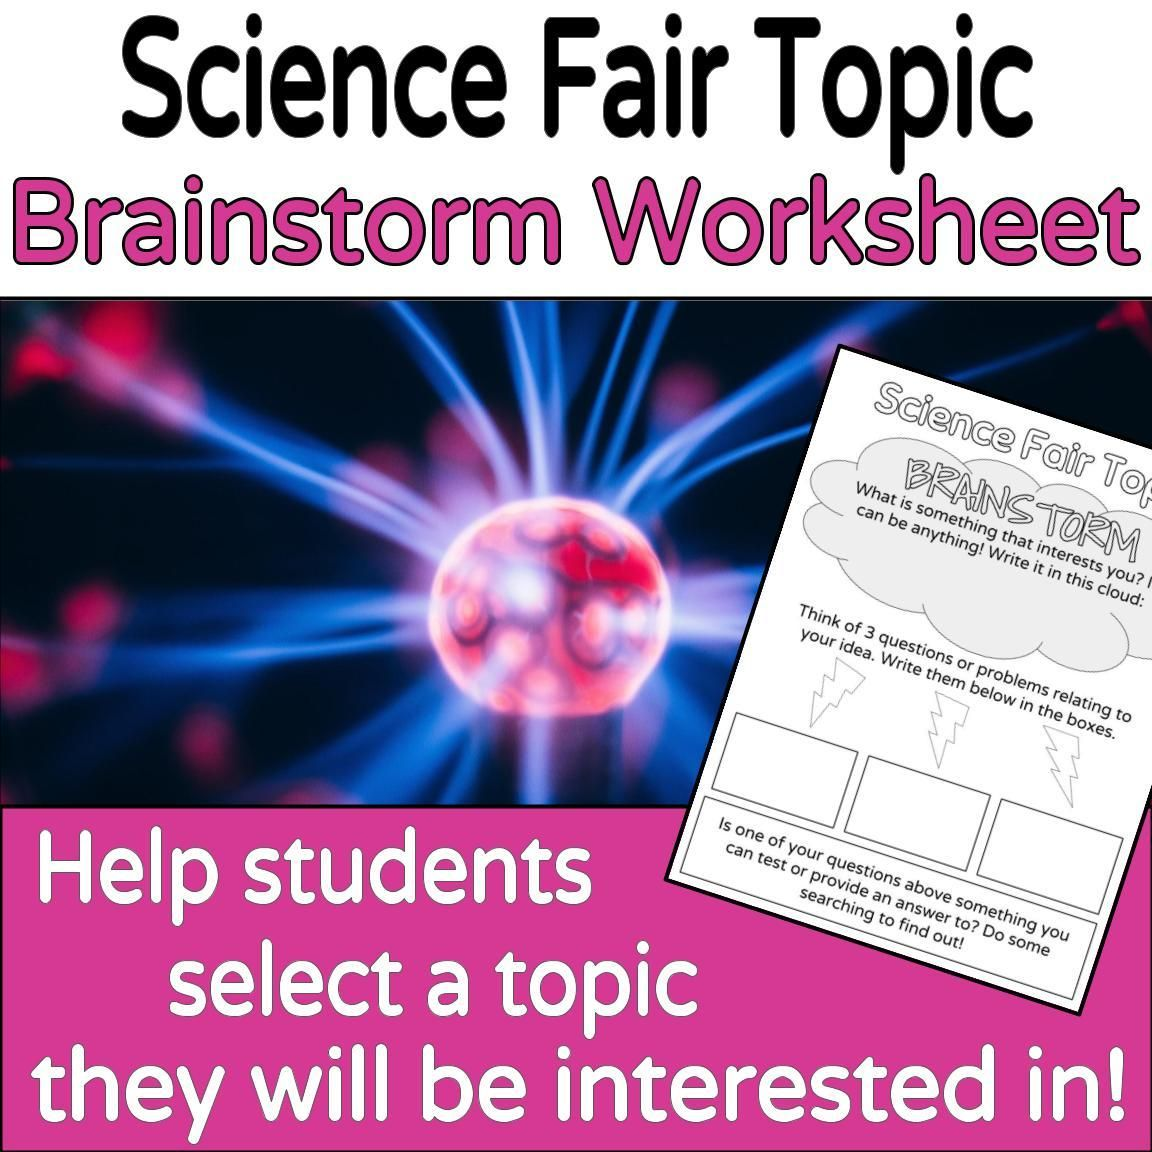 Science Fair Topic Brainstorming Worksheet Printable Or